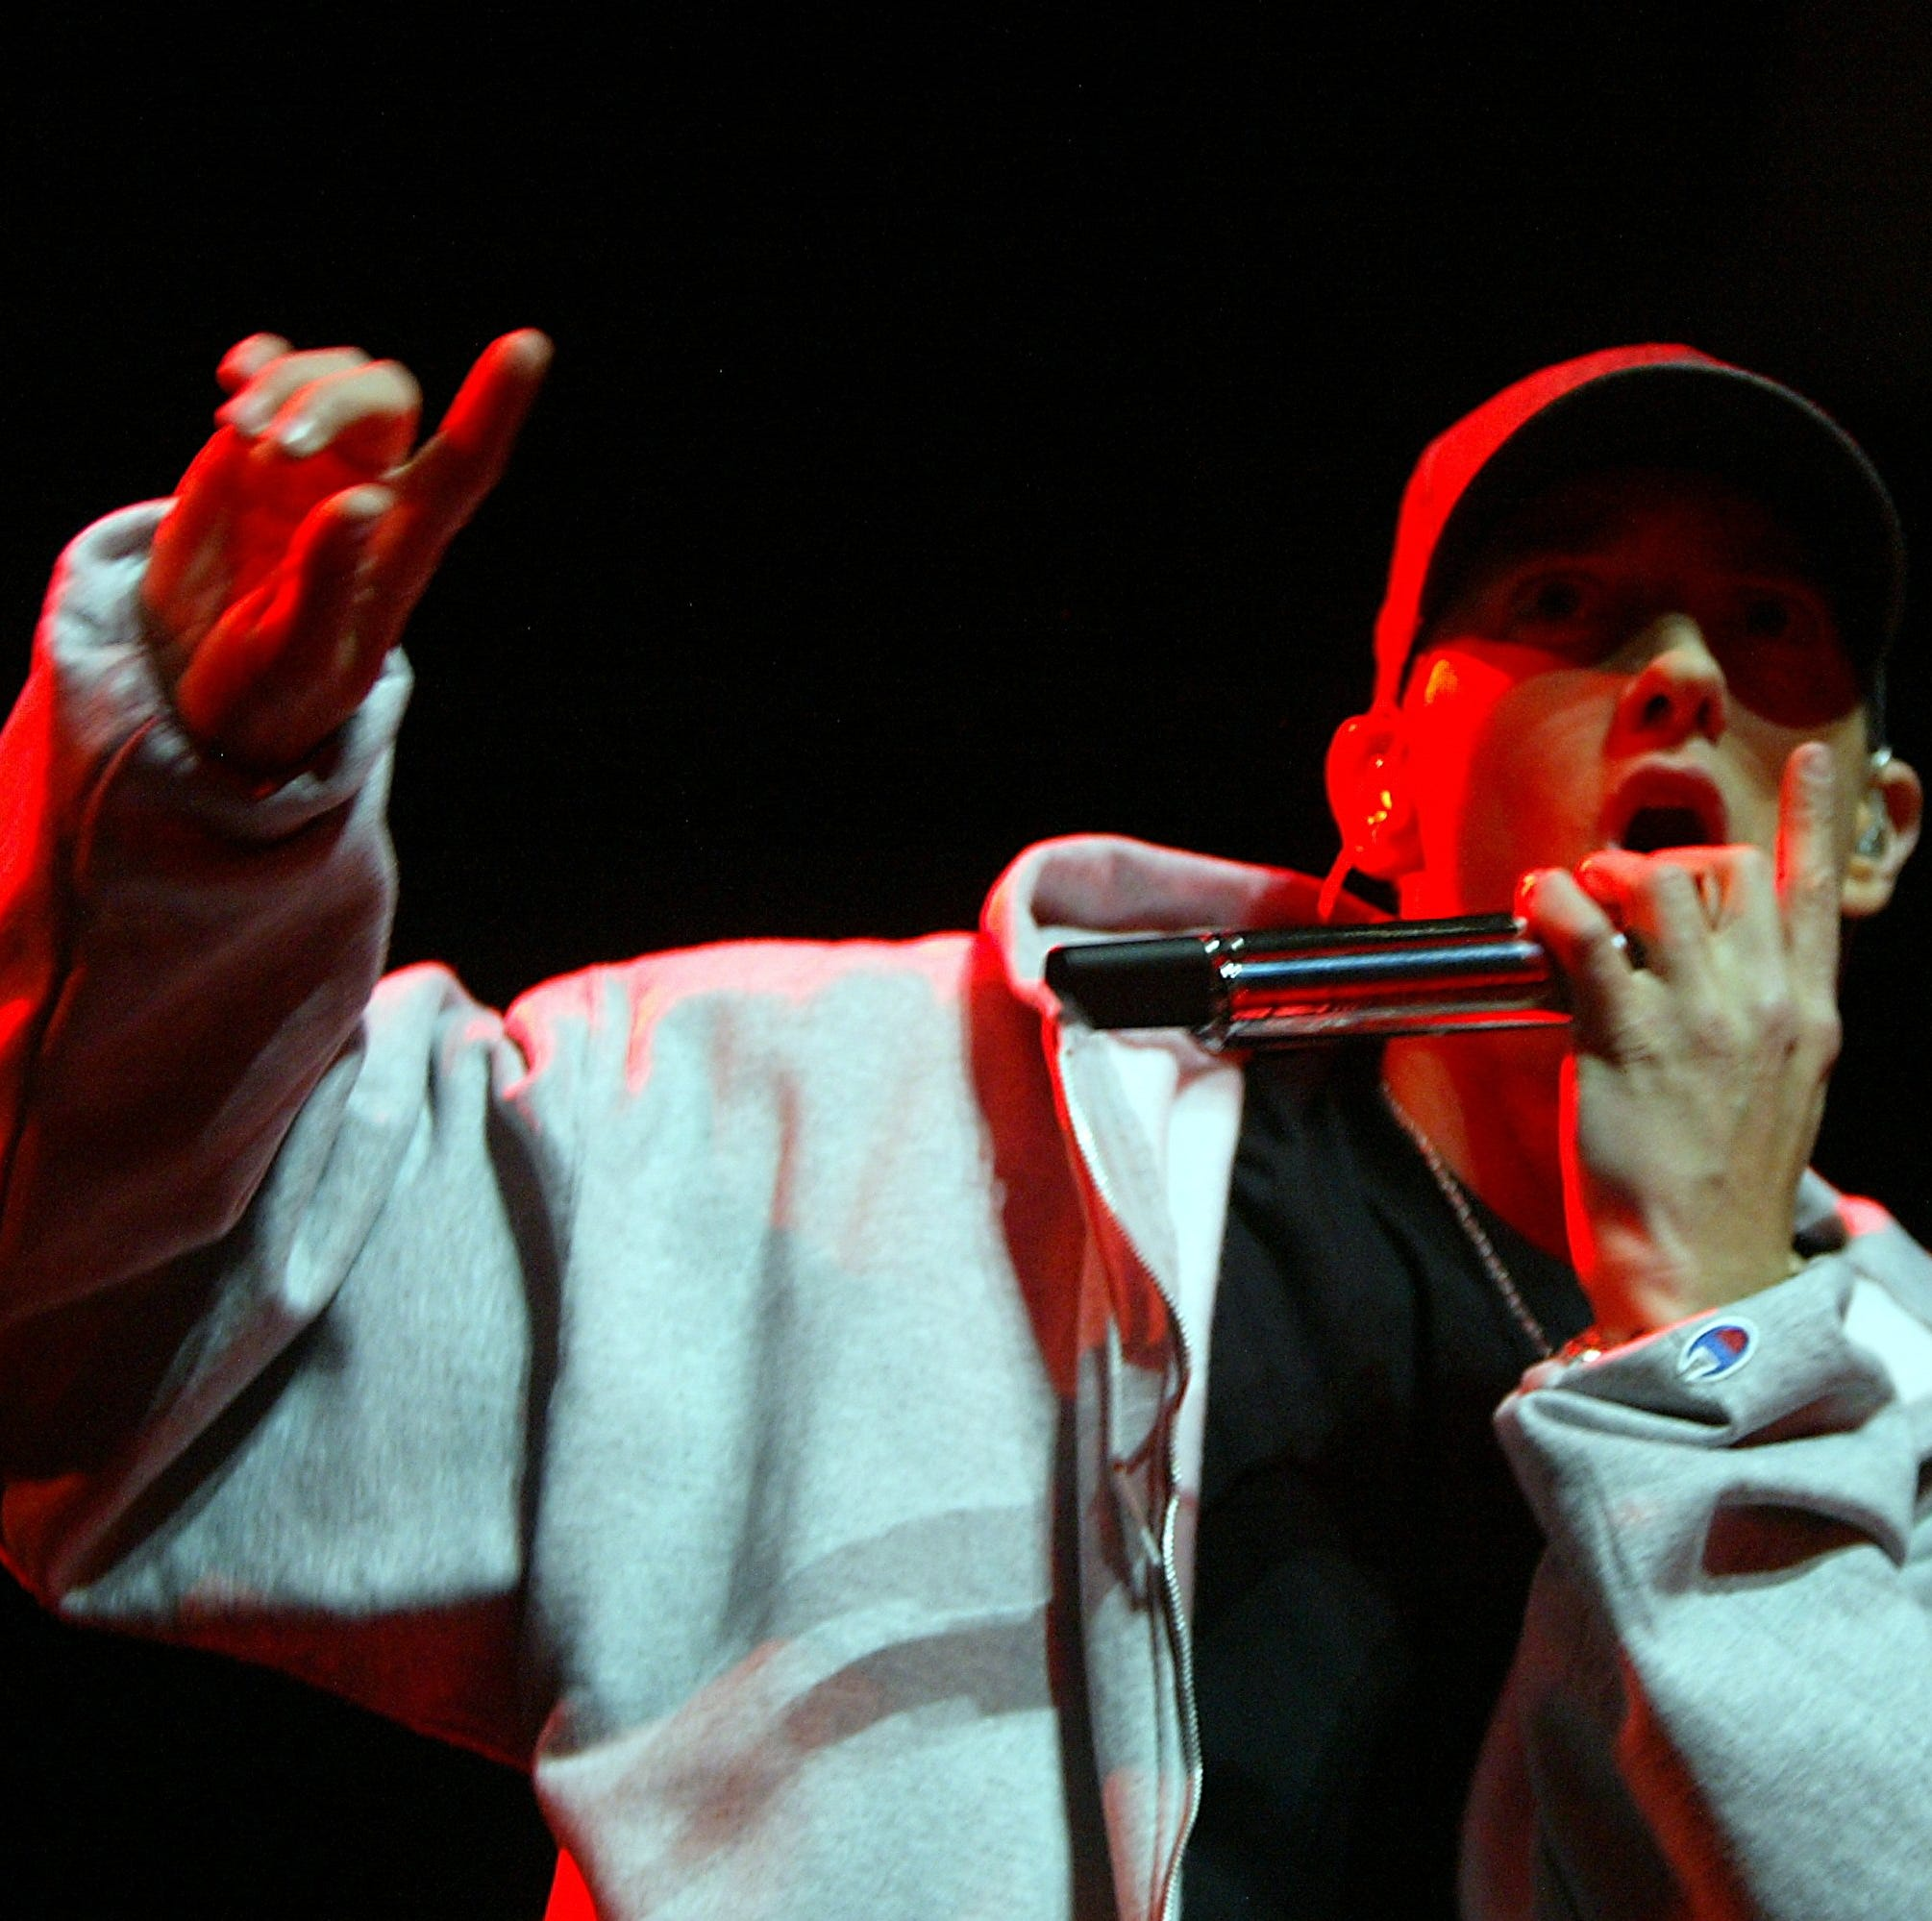 Eminem's AAF tweet spurs 'high-level' talks about Detroit expansion